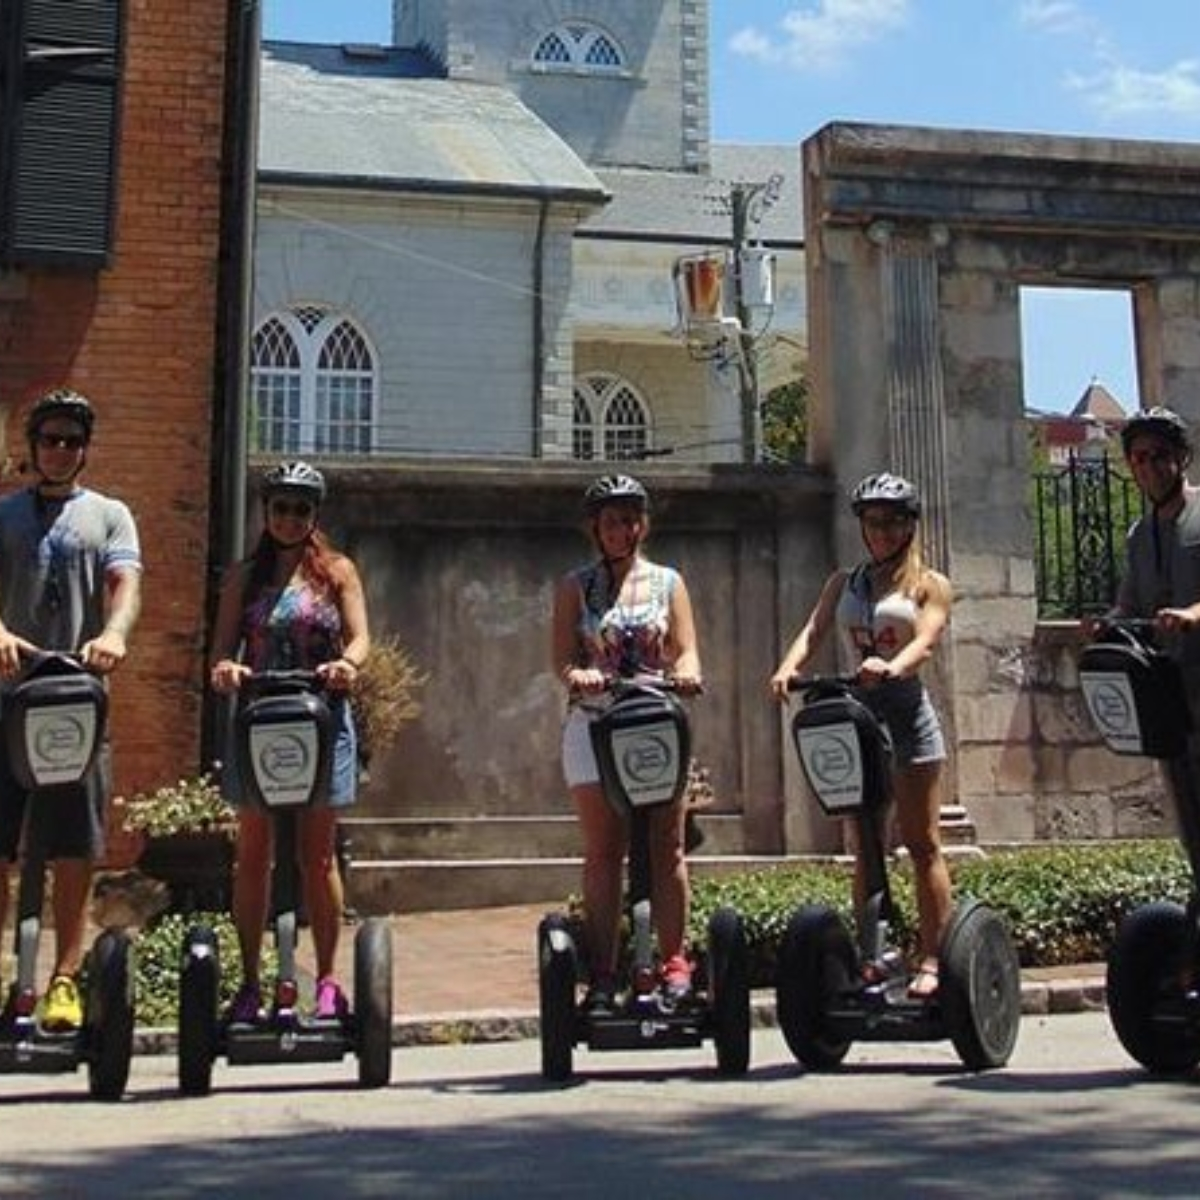 Segway Tour of Savannah Images